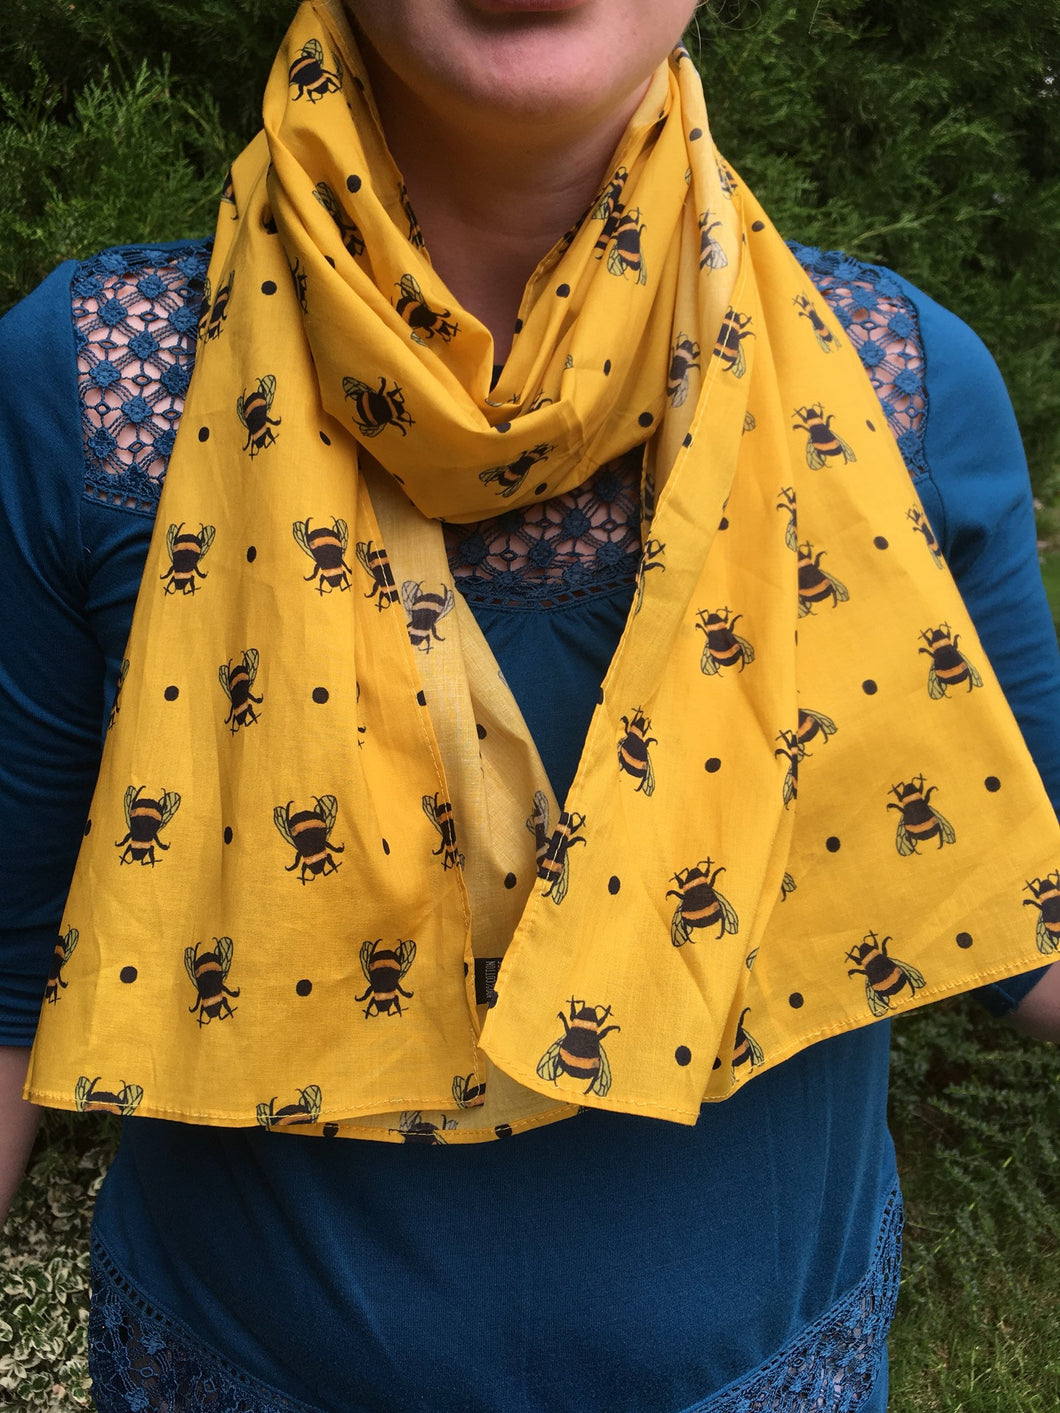 Bee, bumble bee, scarf, cotton scarf, yellow scarf, for bee lovers, for bee keepers, bee gift